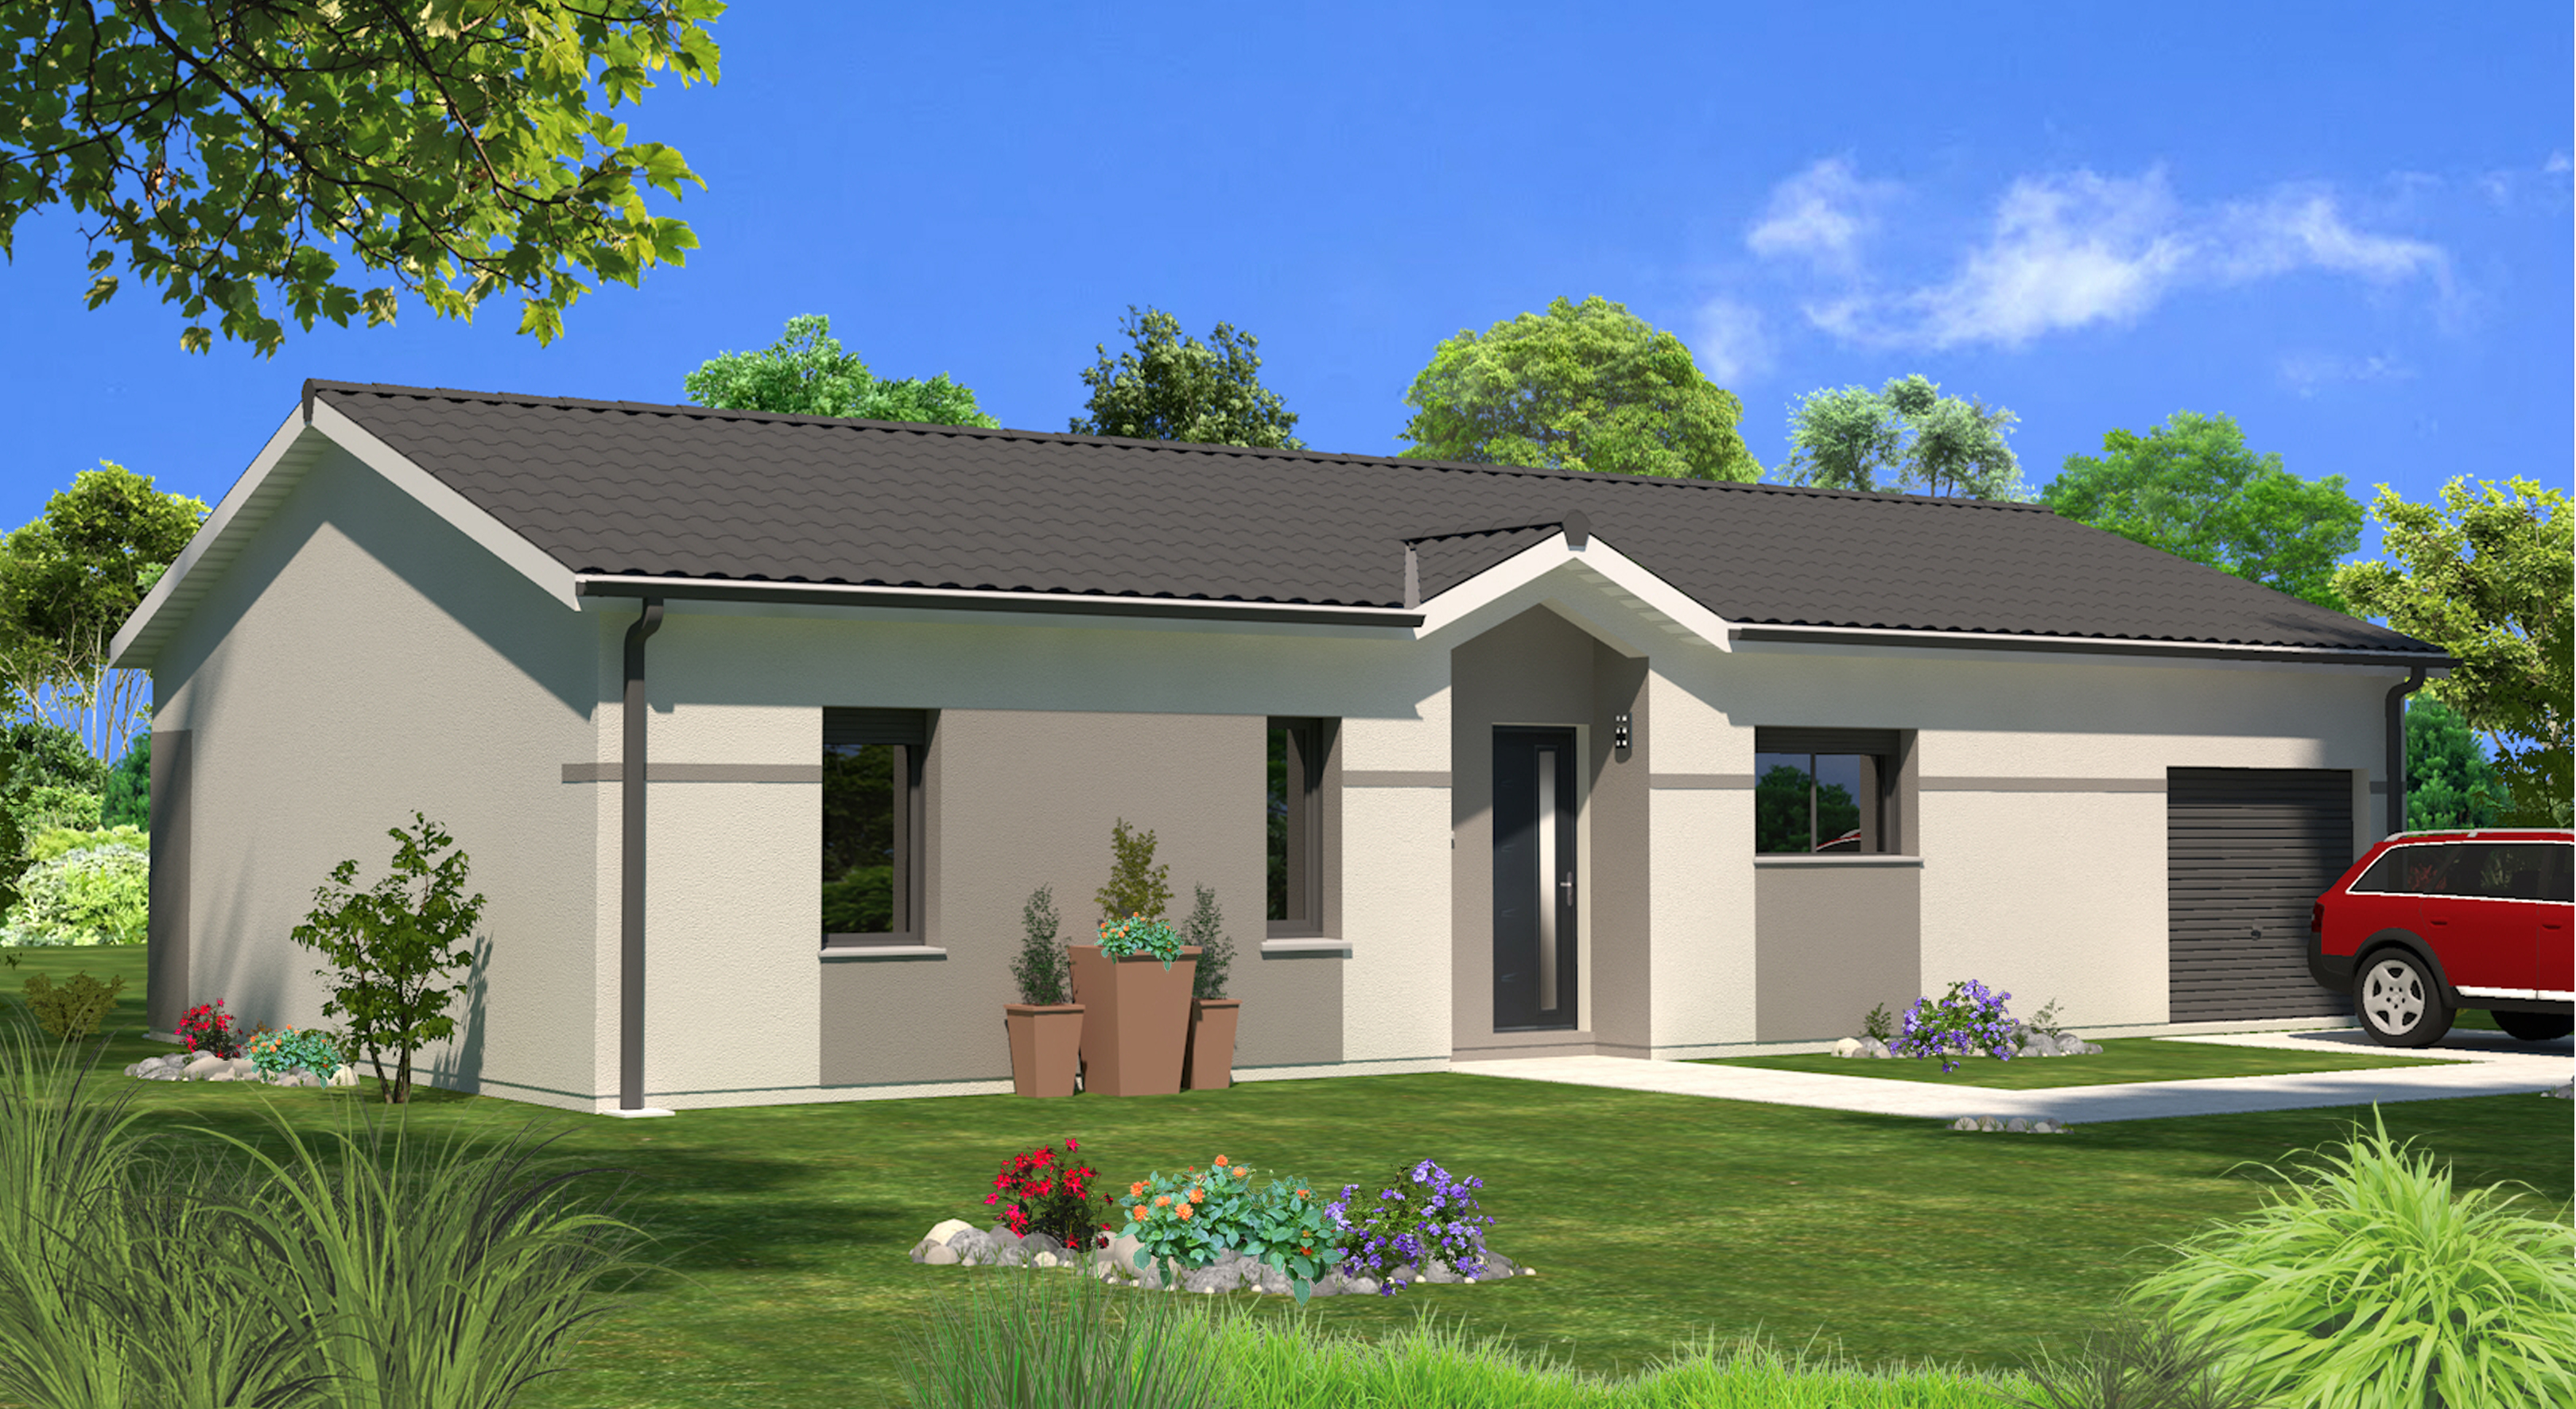 Maison contemporaine plain pied plan 140m2 maison moderne - Maison simple a construire ...